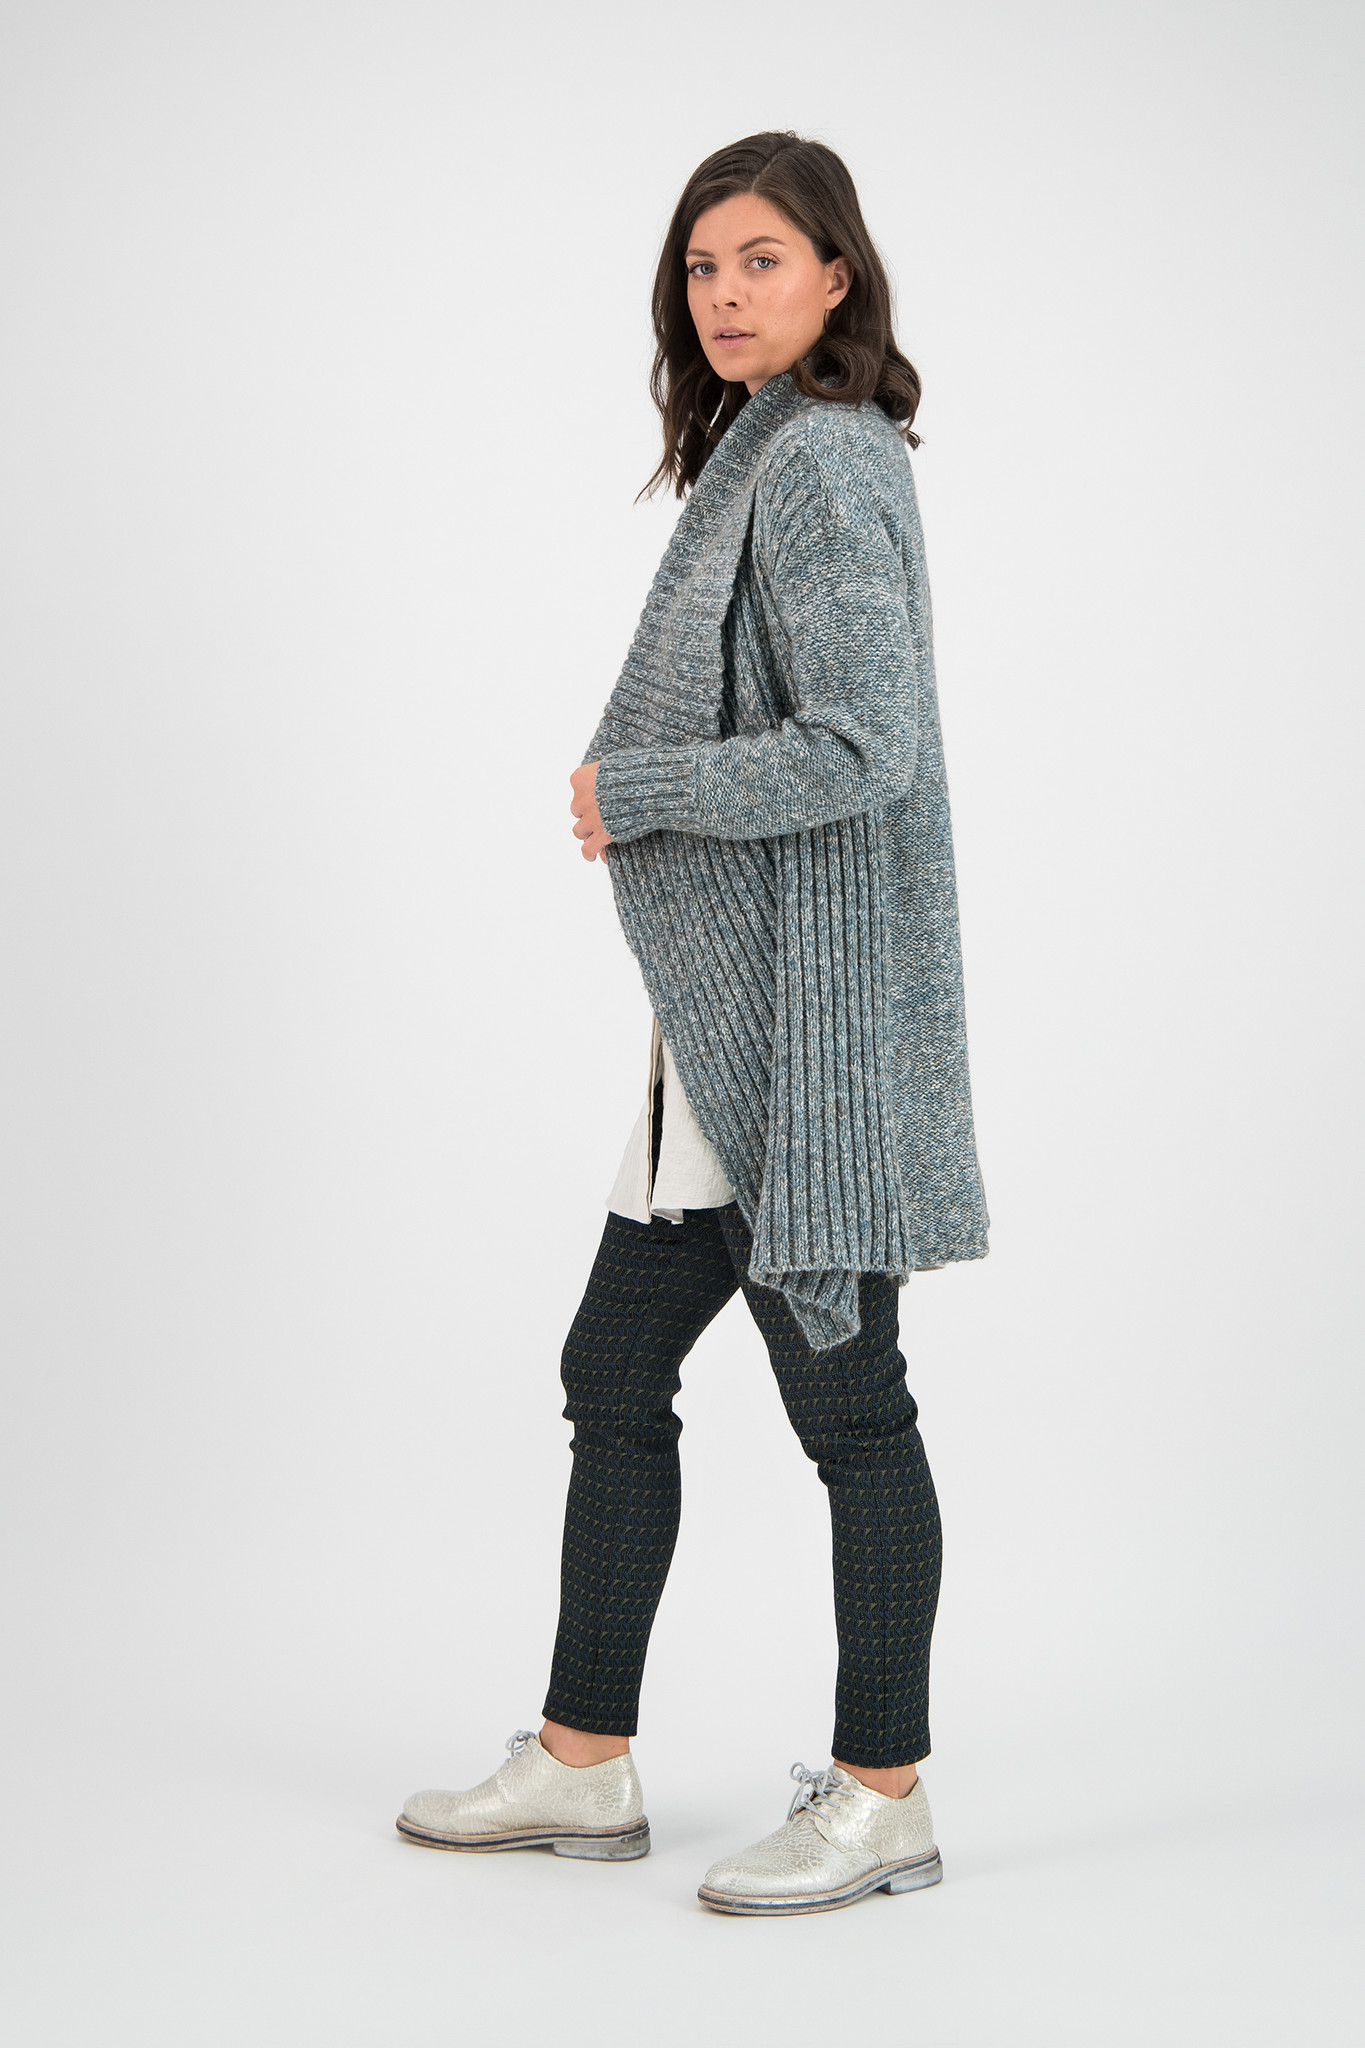 SYLVER Easter Cardigan - Tundra